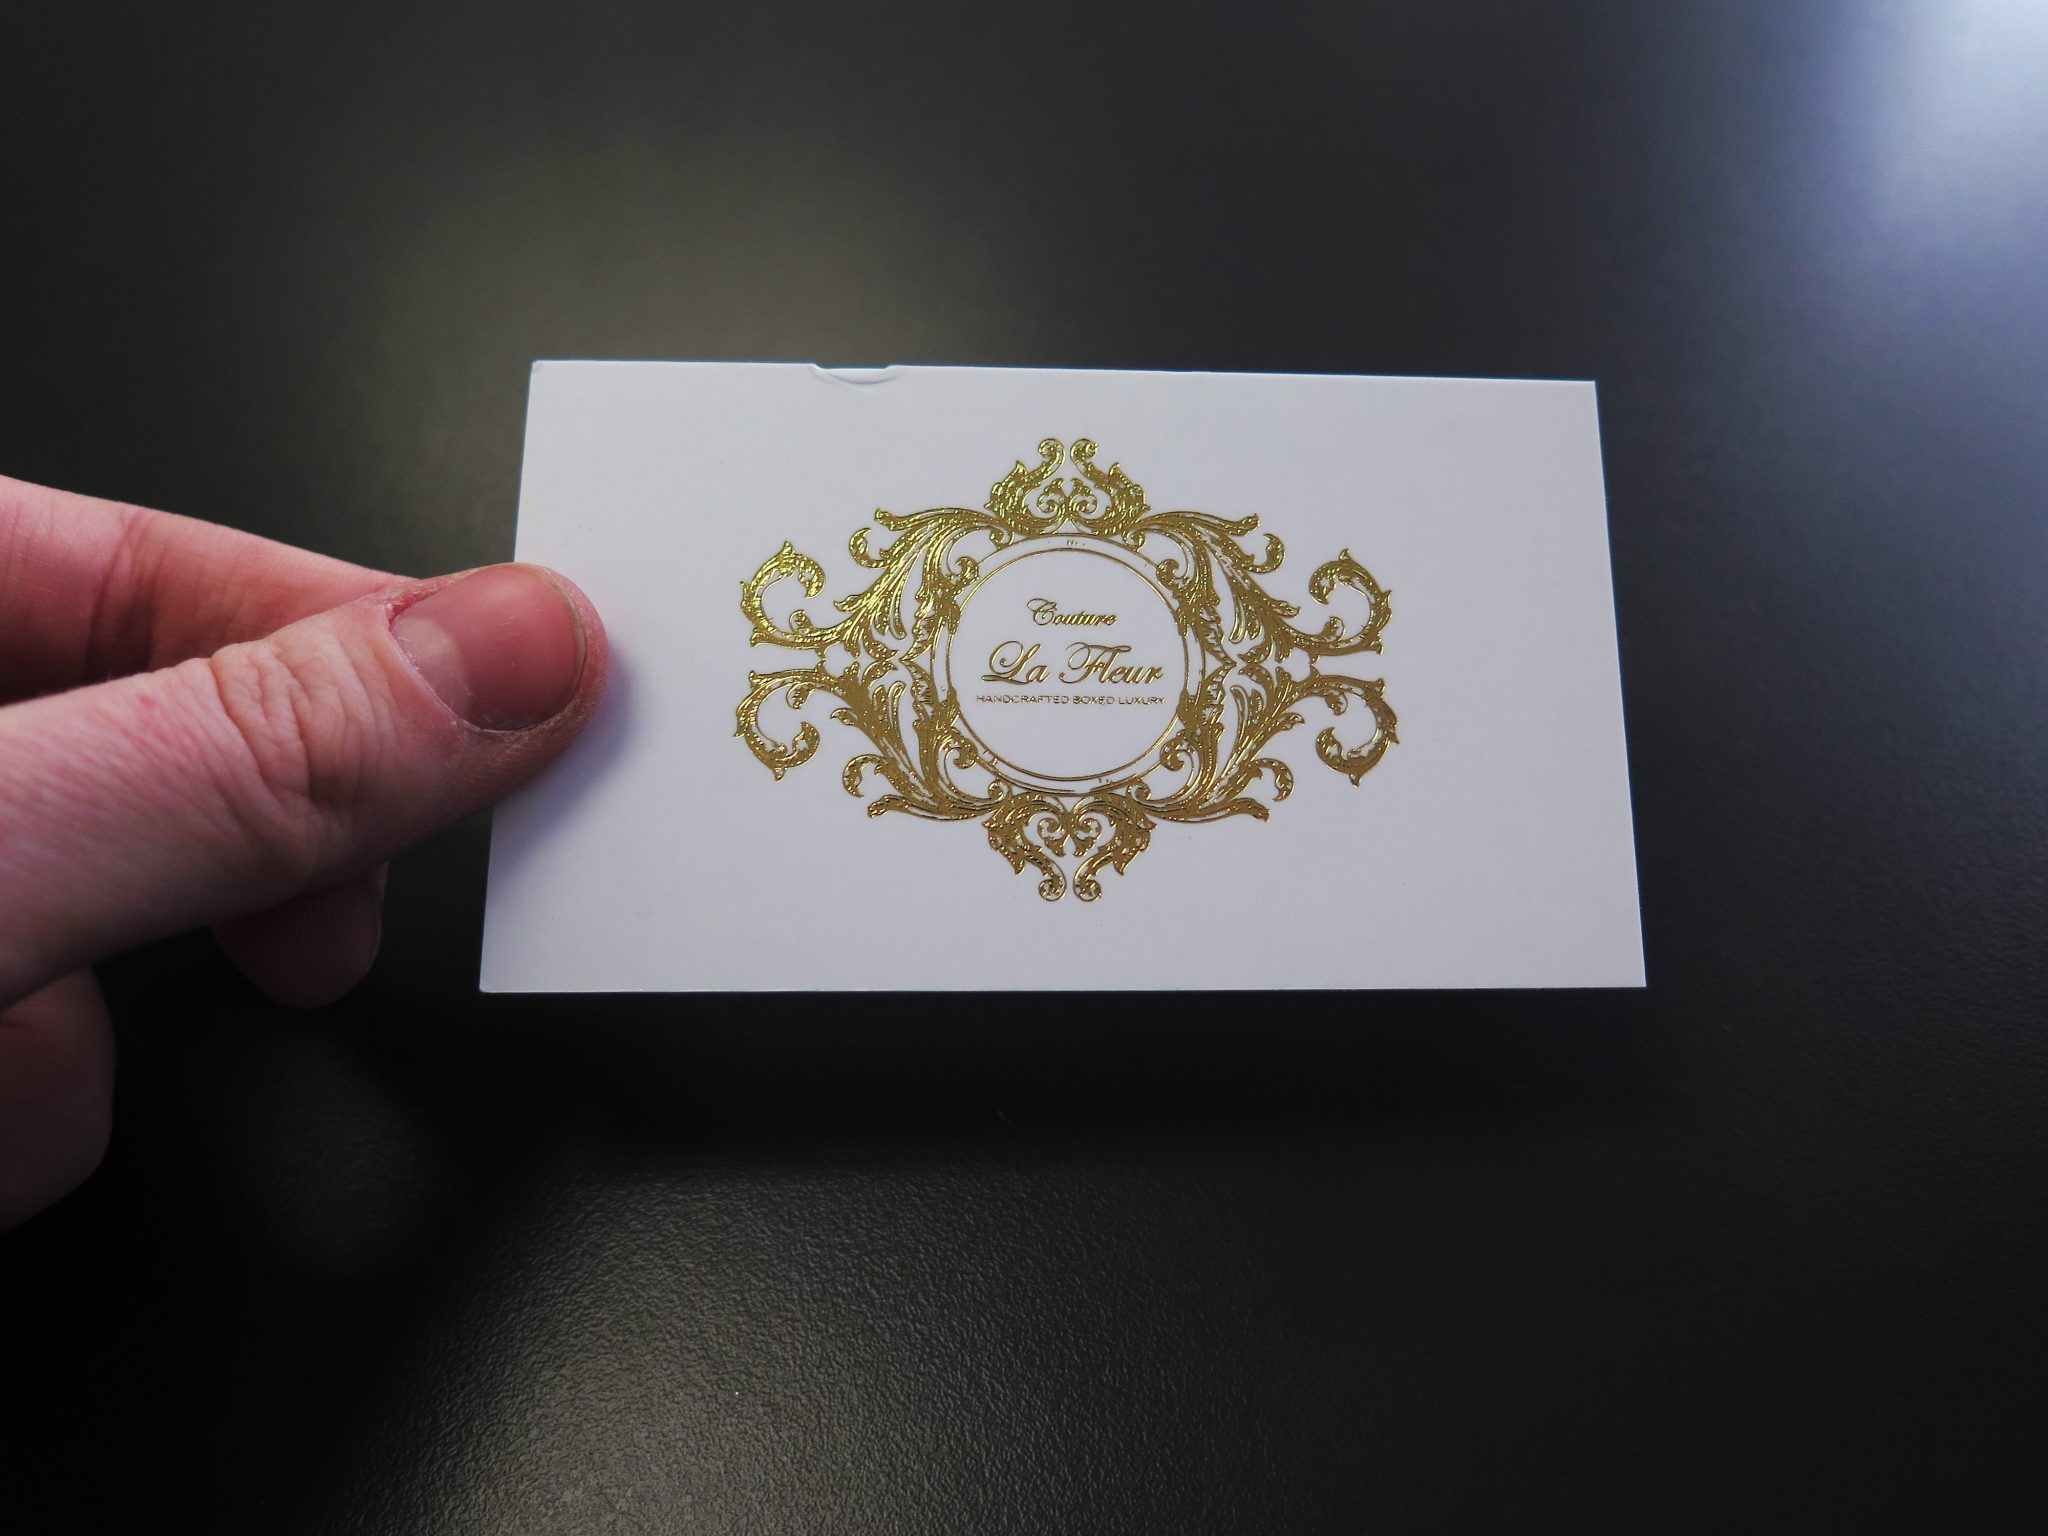 Foil Business Cards at Minuteman Press Beltline in Downtown Calgary